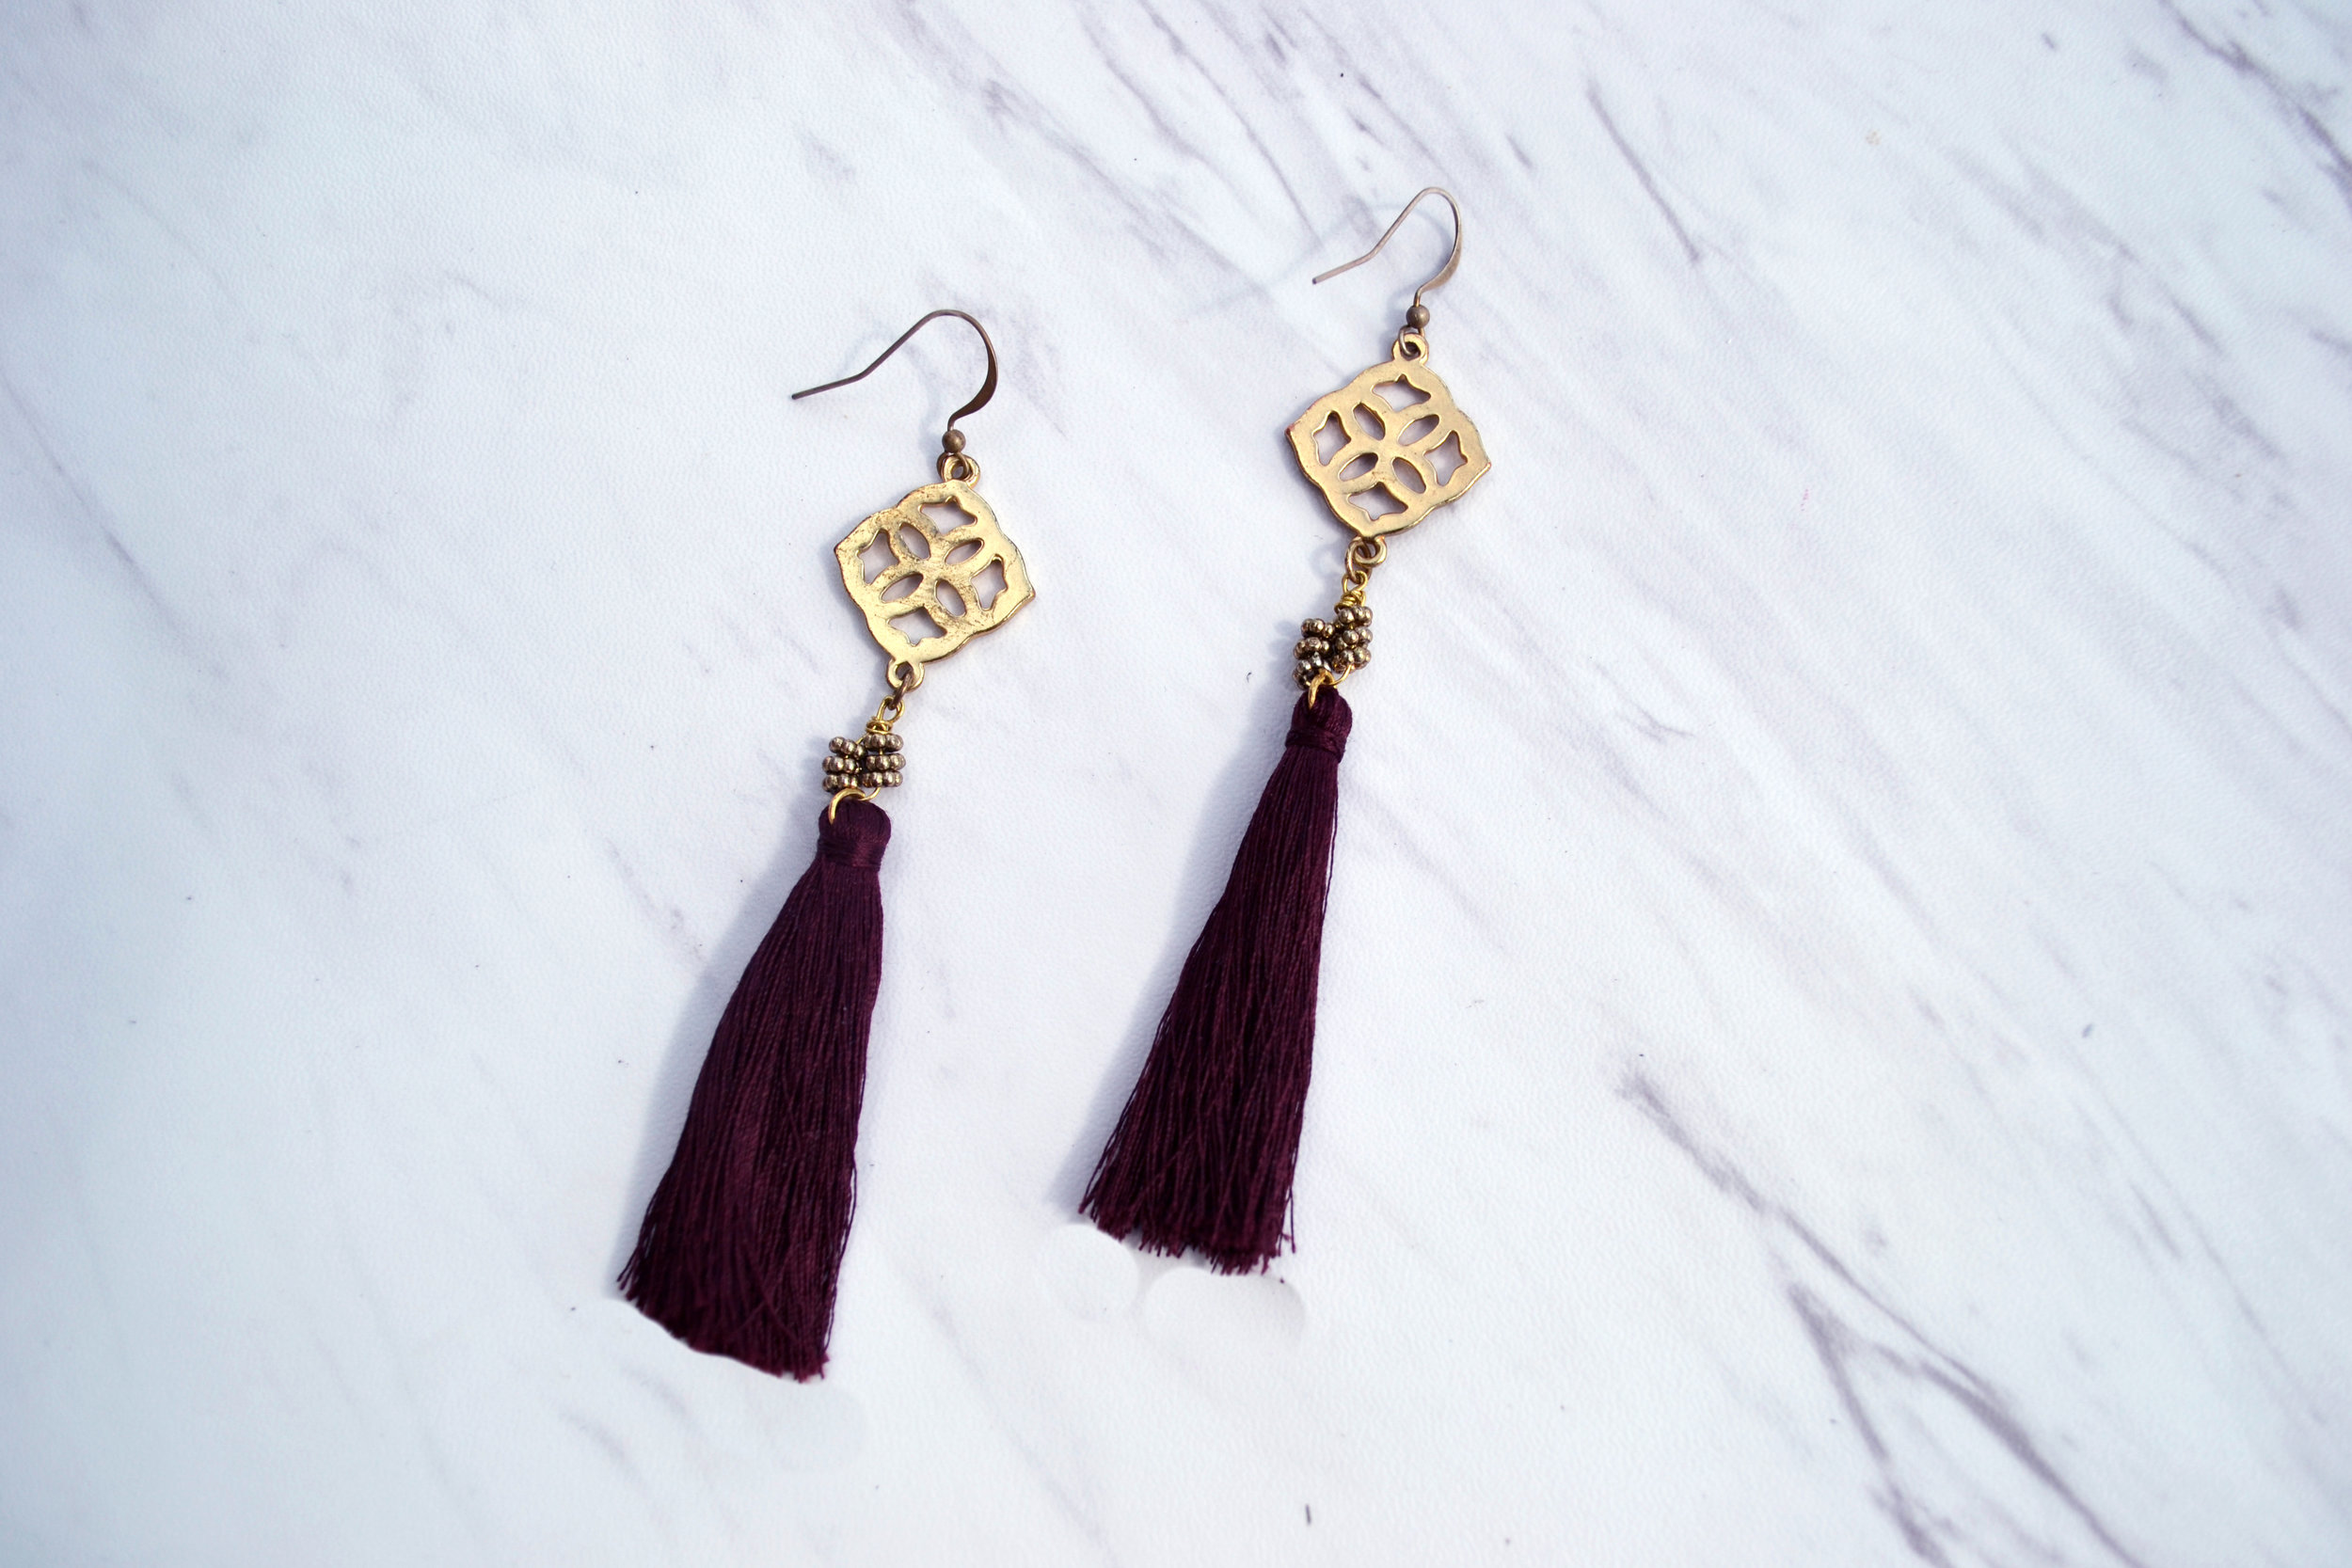 E N Z O $35 Handmade. Color: Burgundy 21mm 18k gold plated short fish hook. Nickel-free. Please   contact me   for other color combinations